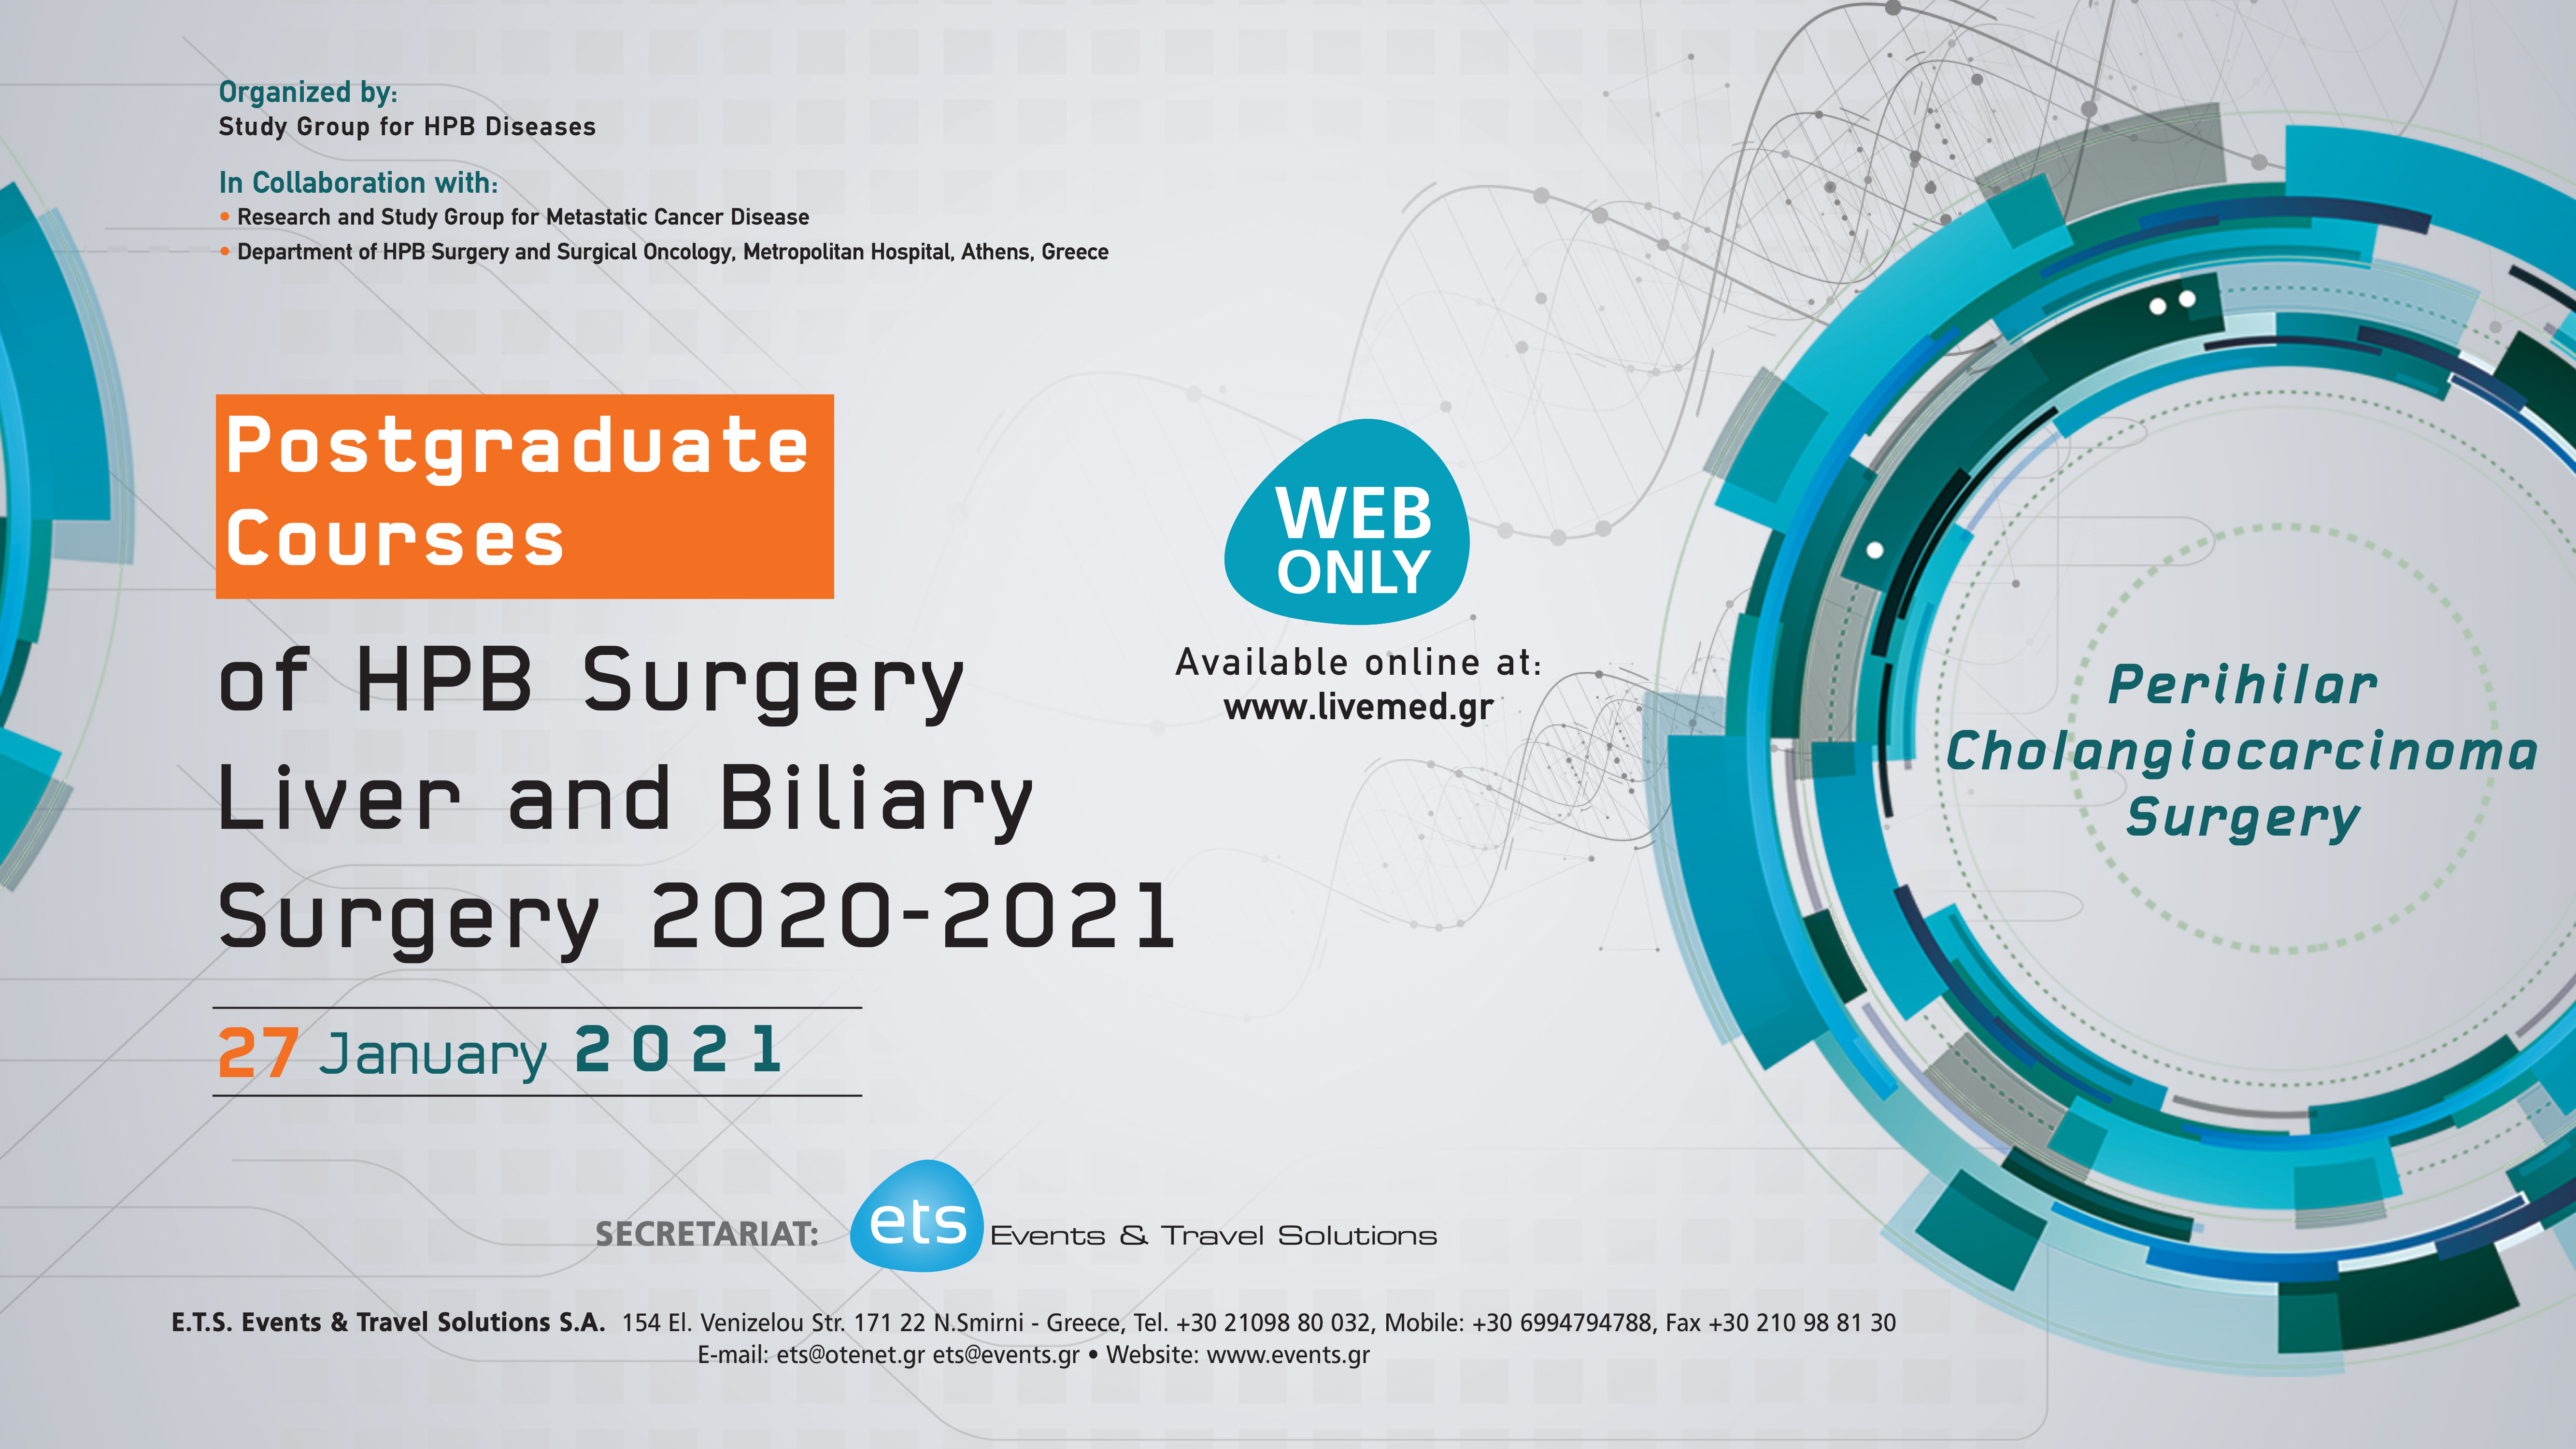 Postgraduate Courses of HPB Surgery Liver and Biliary Surgery 2020-2021 - Perihilar Cholangiocarcinoma Surgery